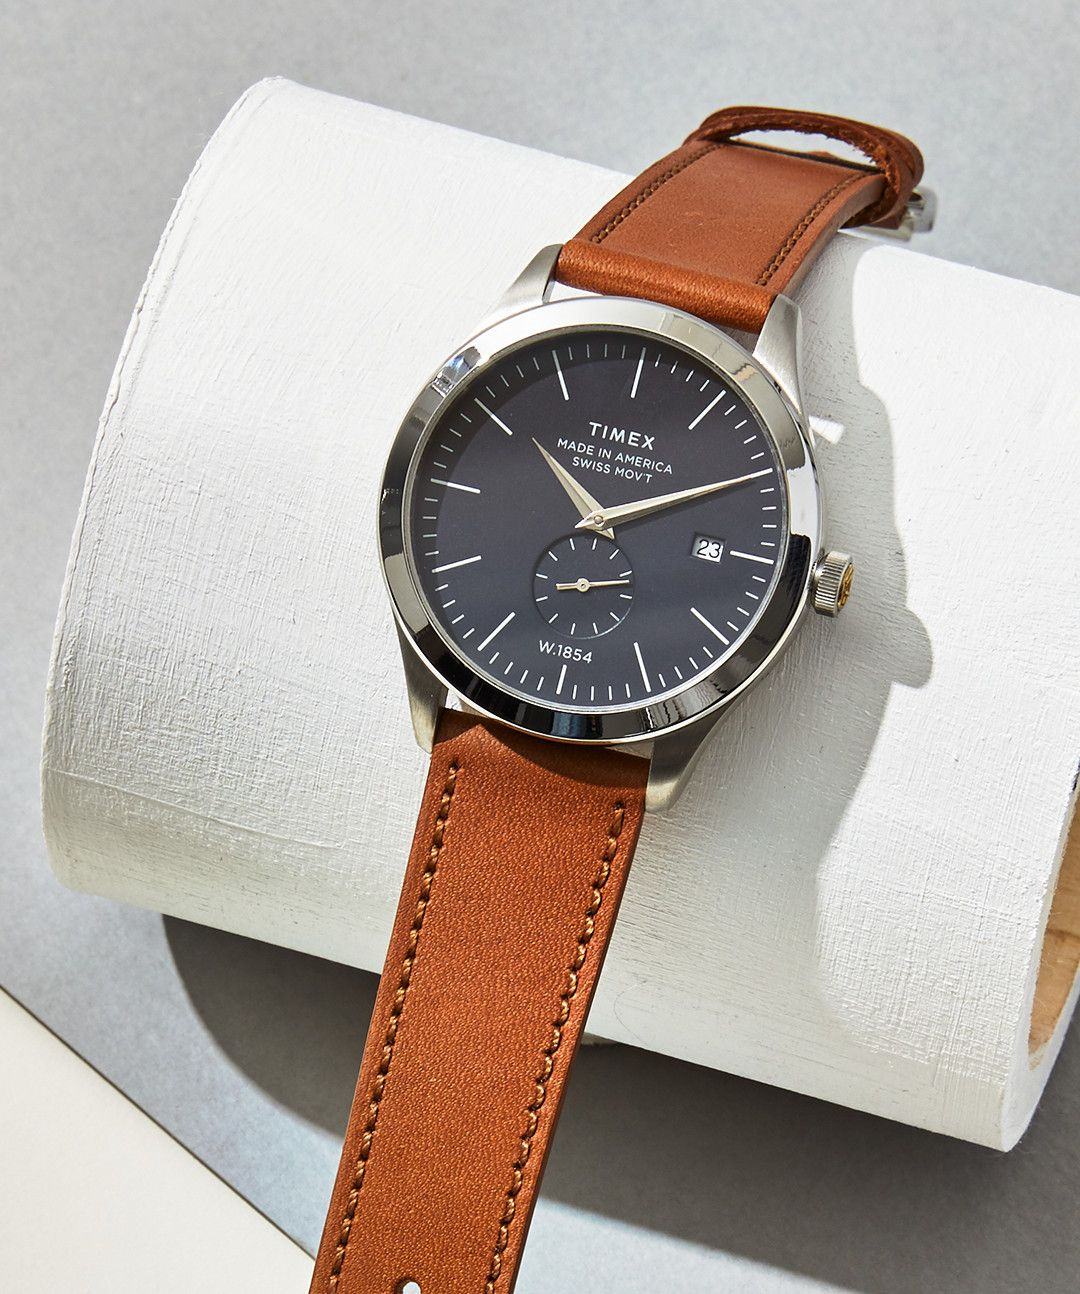 This American-Made Timex Watch Brings a 165-Year-Old Tradition Back Home